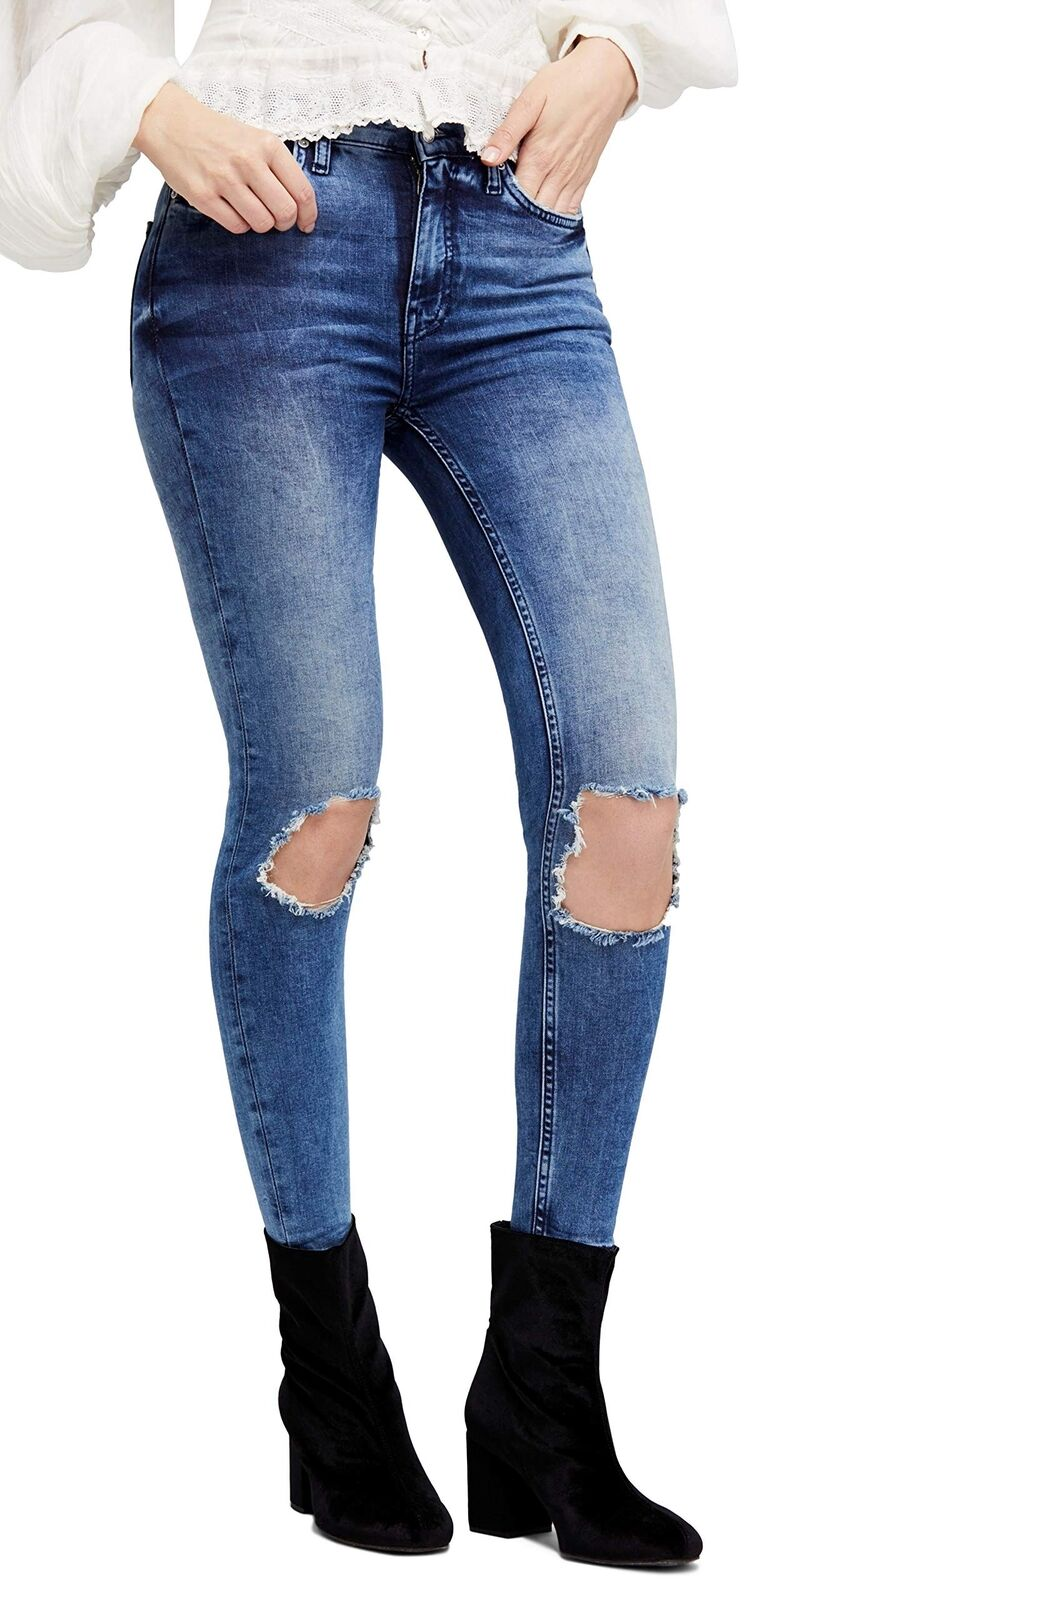 Free People Women's High Rise Busted Knee Skinny Jeans - Long Length (Turquoi...